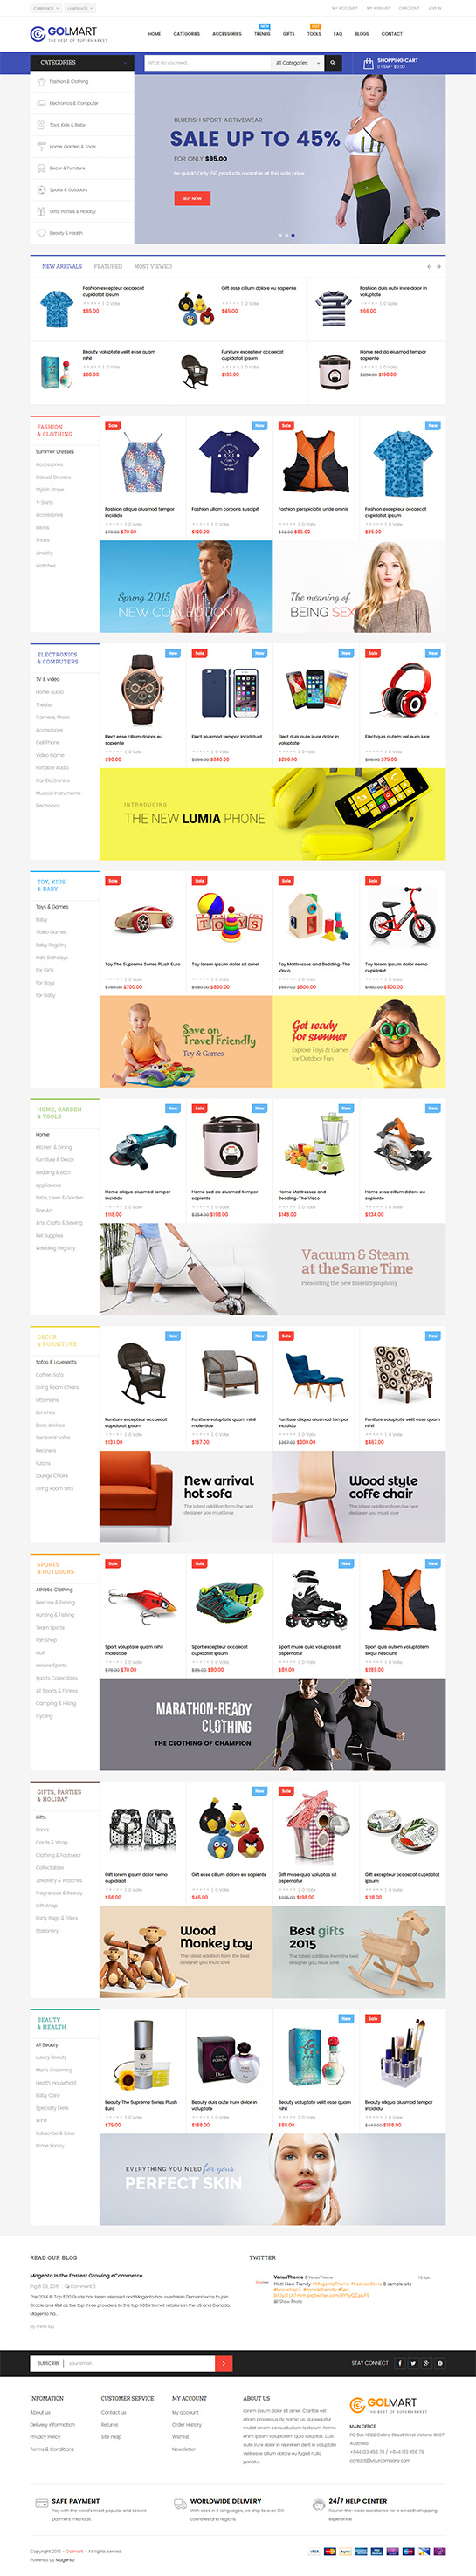 5 Best SHOPIFY Premium themes collection for Furniture Store - Ap Golmart - Responsive Shopify Theme